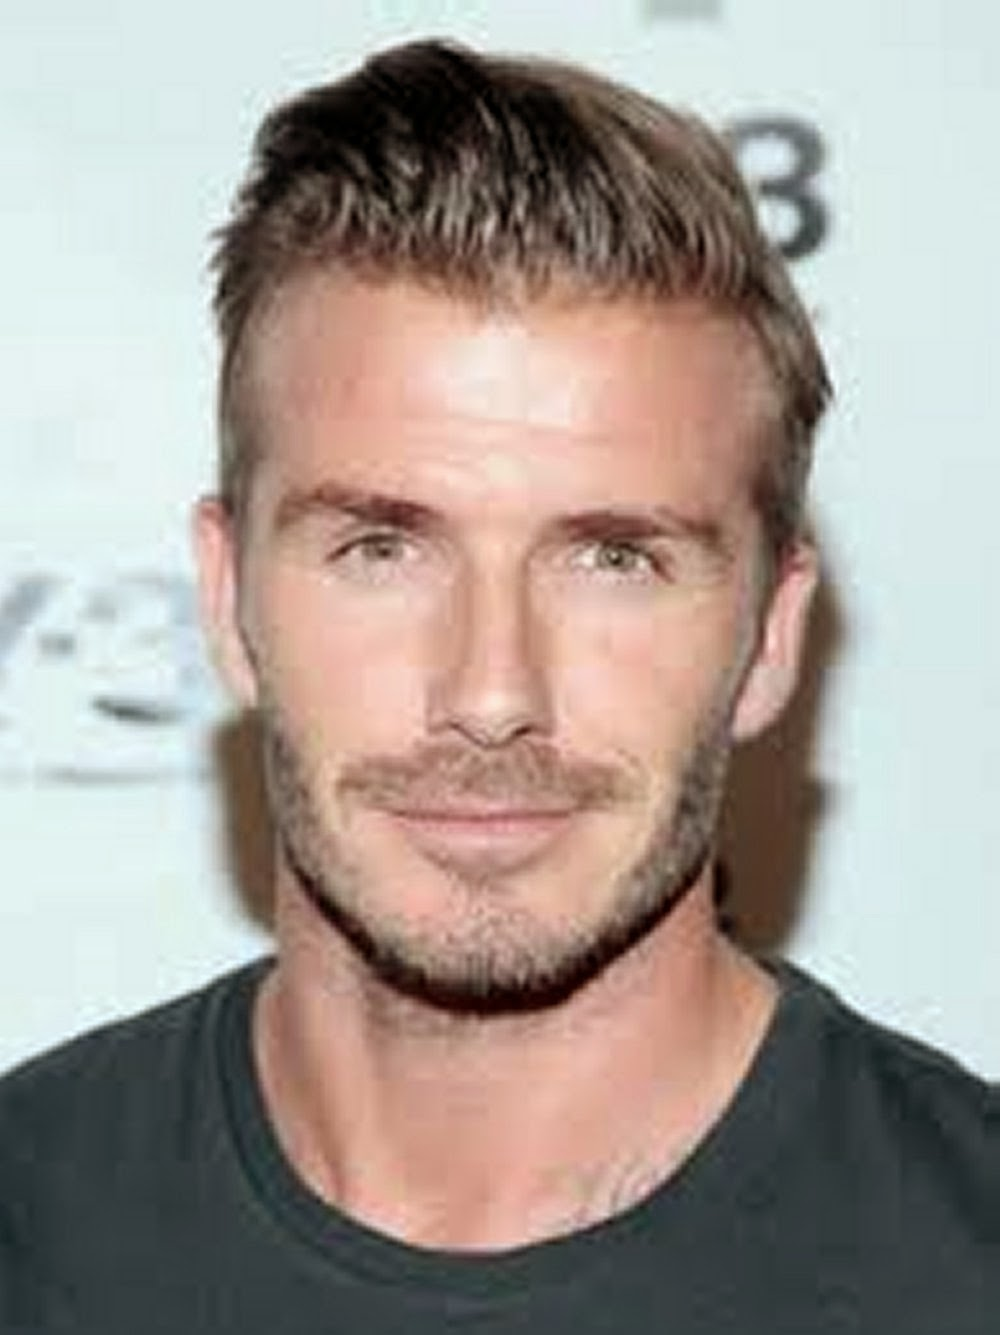 is widely used in men in 2013 image for trendy haircuts for men 2014Hairstyles For Men 2014